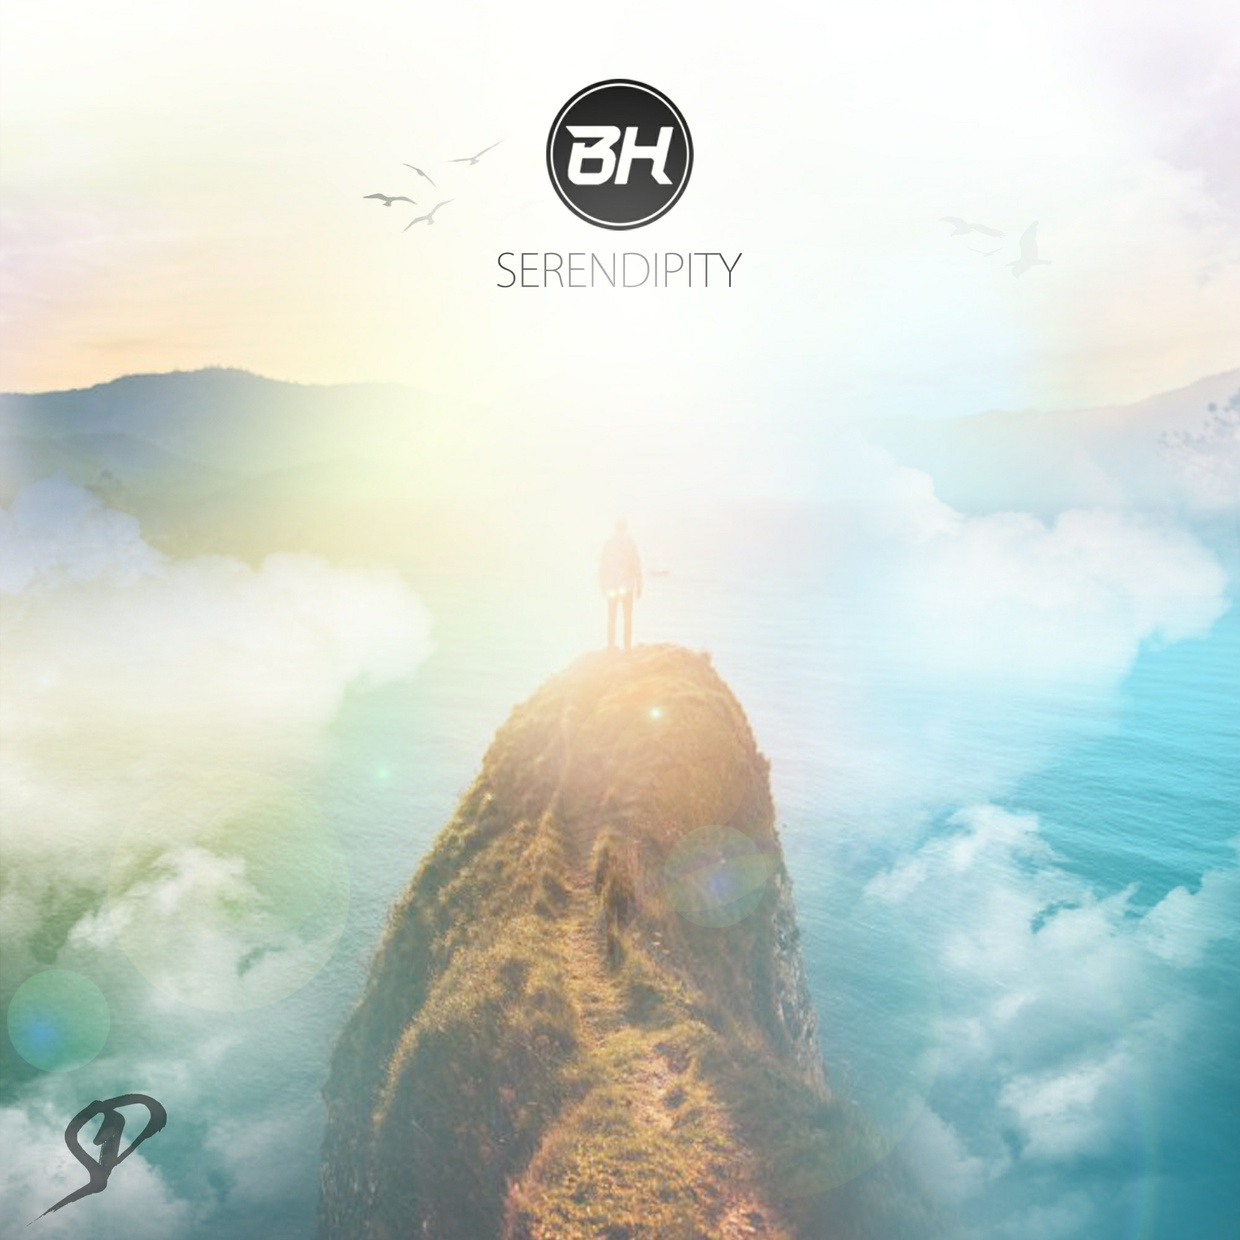 BH - Serendipity Ableton Project Fie